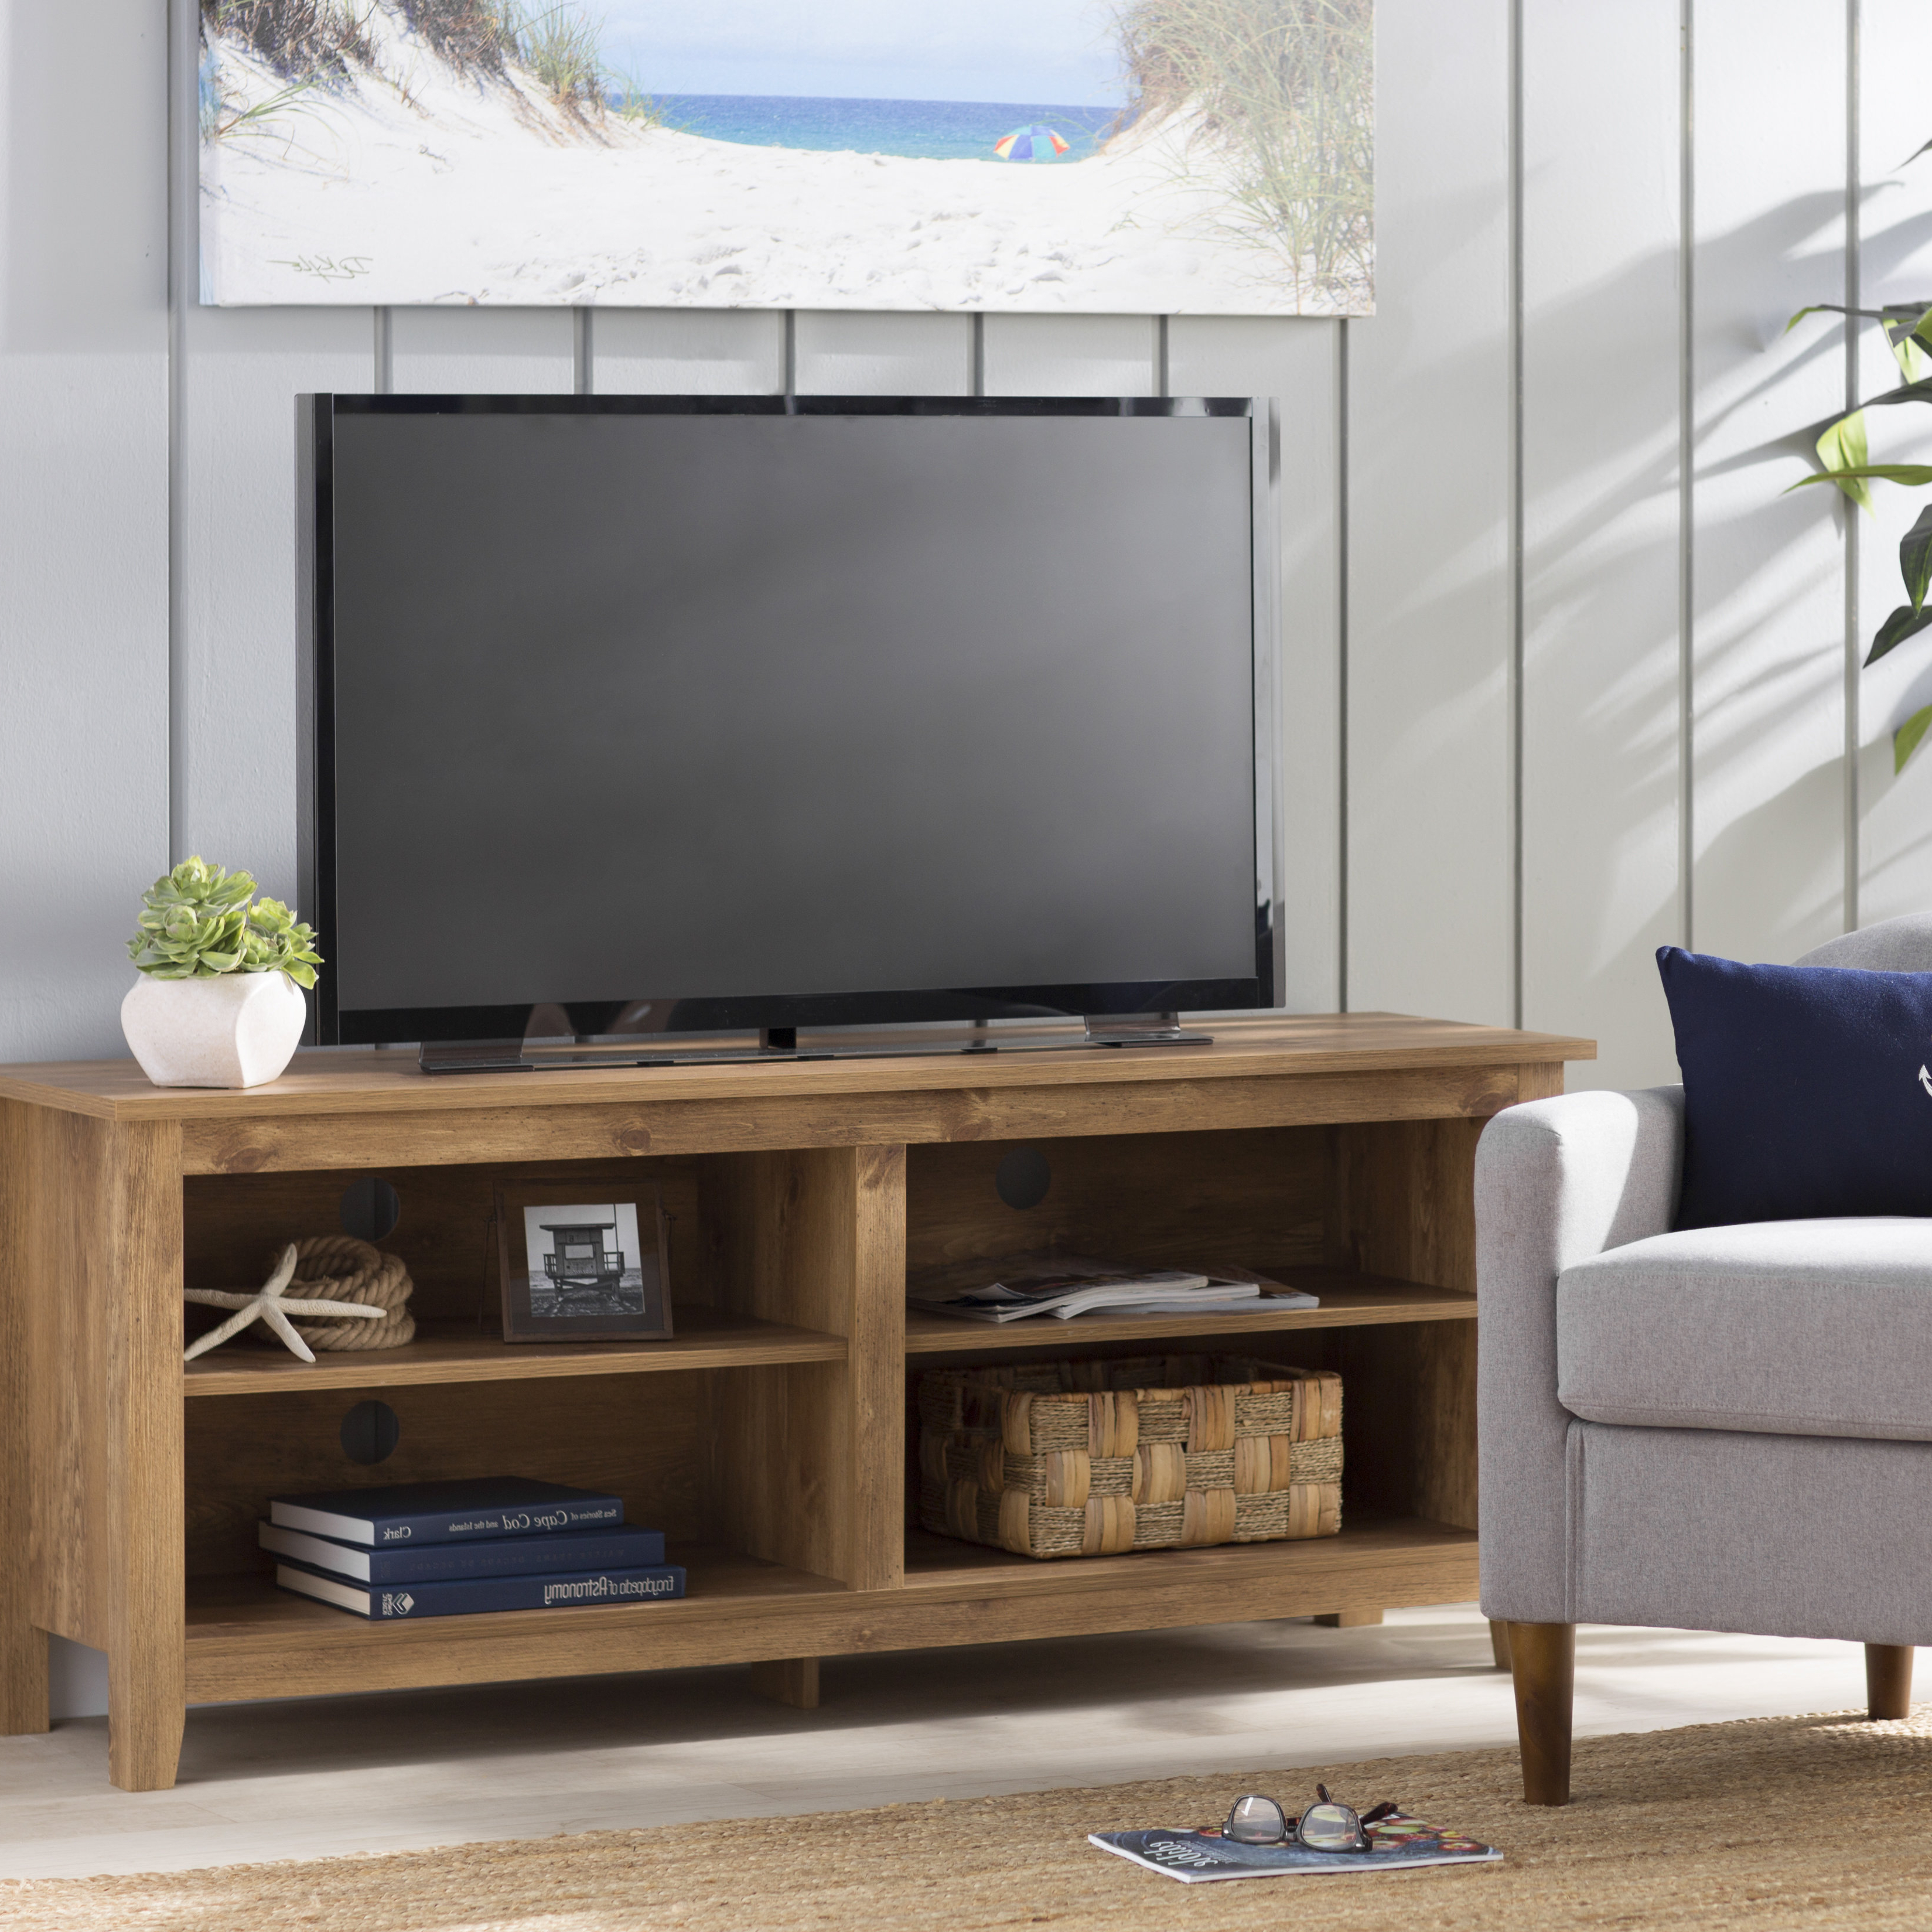 72 Inch Tv Stand | Wayfair Pertaining To Kenzie 72 Inch Open Display Tv Stands (View 4 of 20)